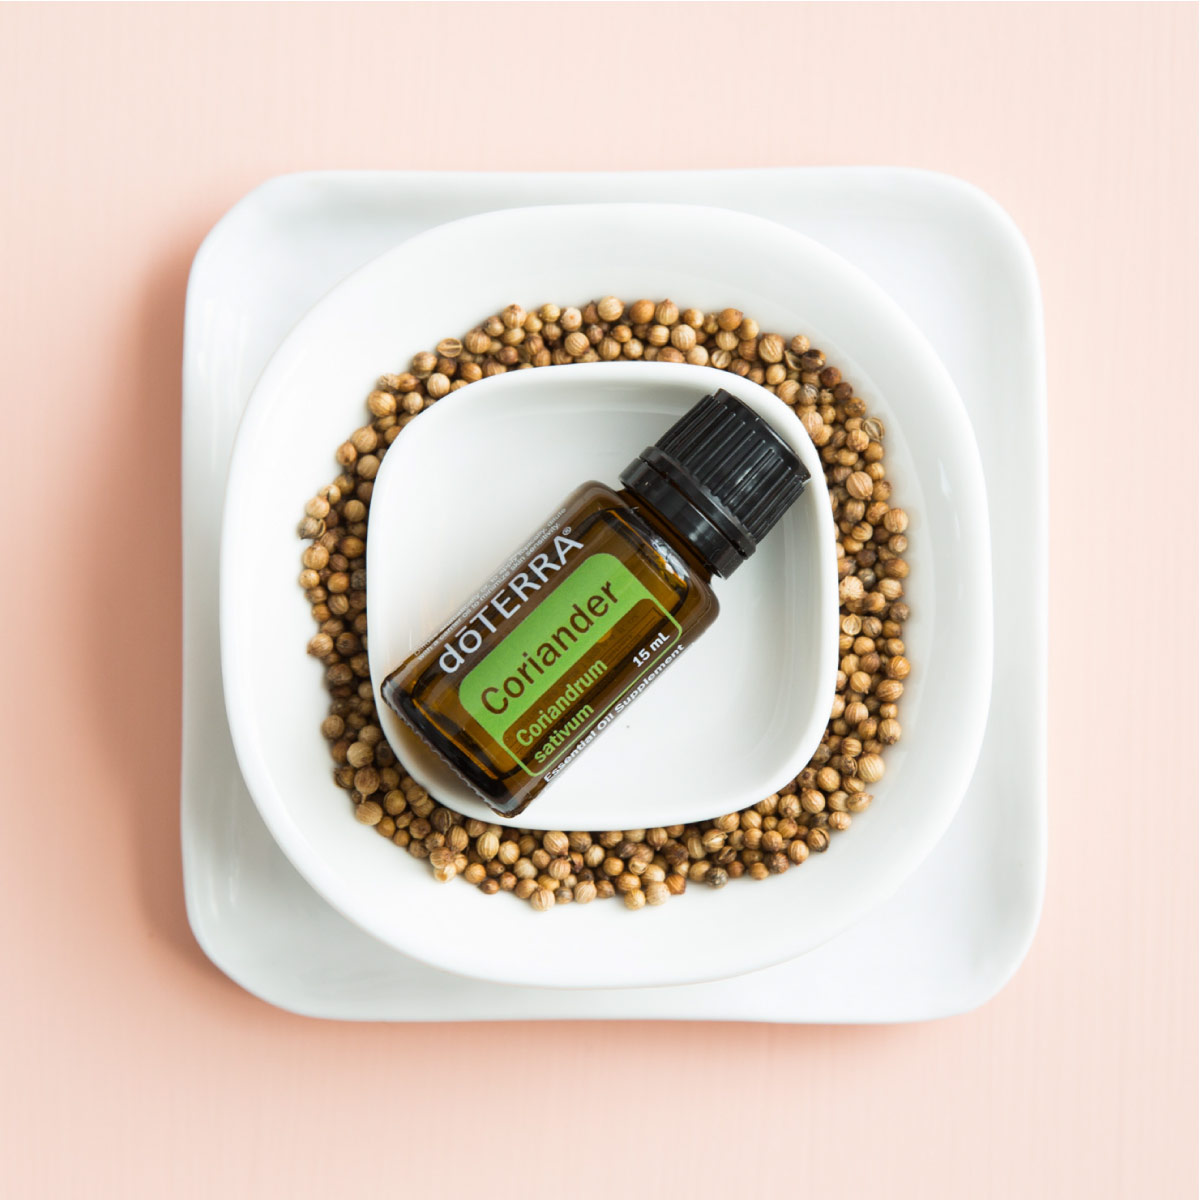 Bottle of doTERRA Coriander oil and coriander seeds in a white dish. What are the uses and benefits of Coriander oil? Coriander essential oil is beneficial for the skin, creates a relaxing atmosphere, and aids in digestion.